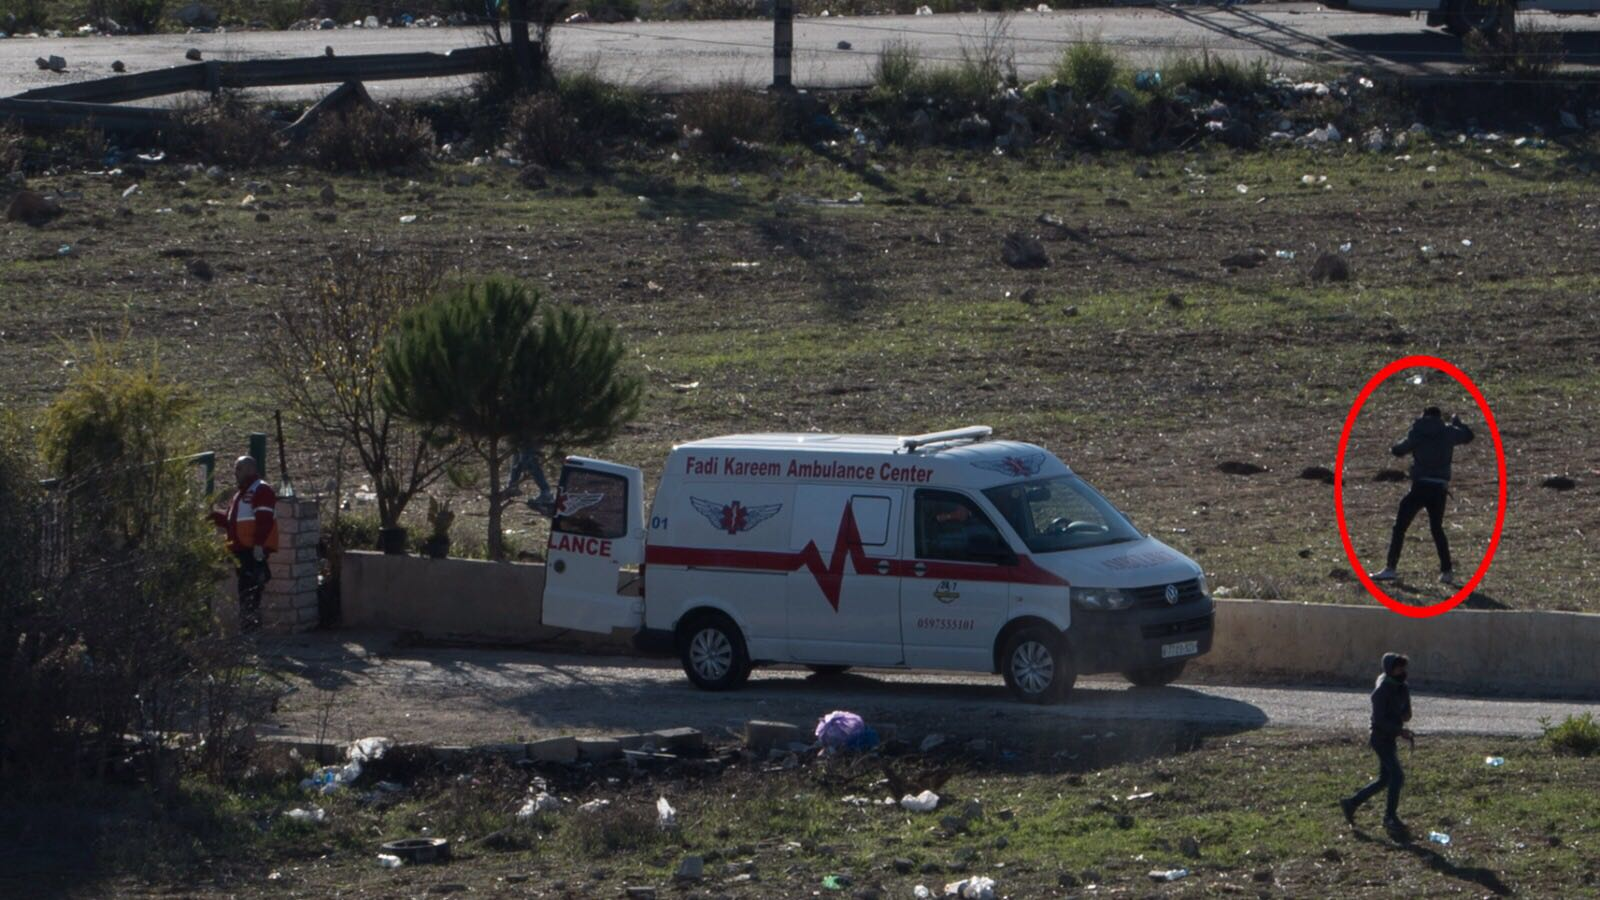 IDF accuses Palestinians of using ambulance as shield for